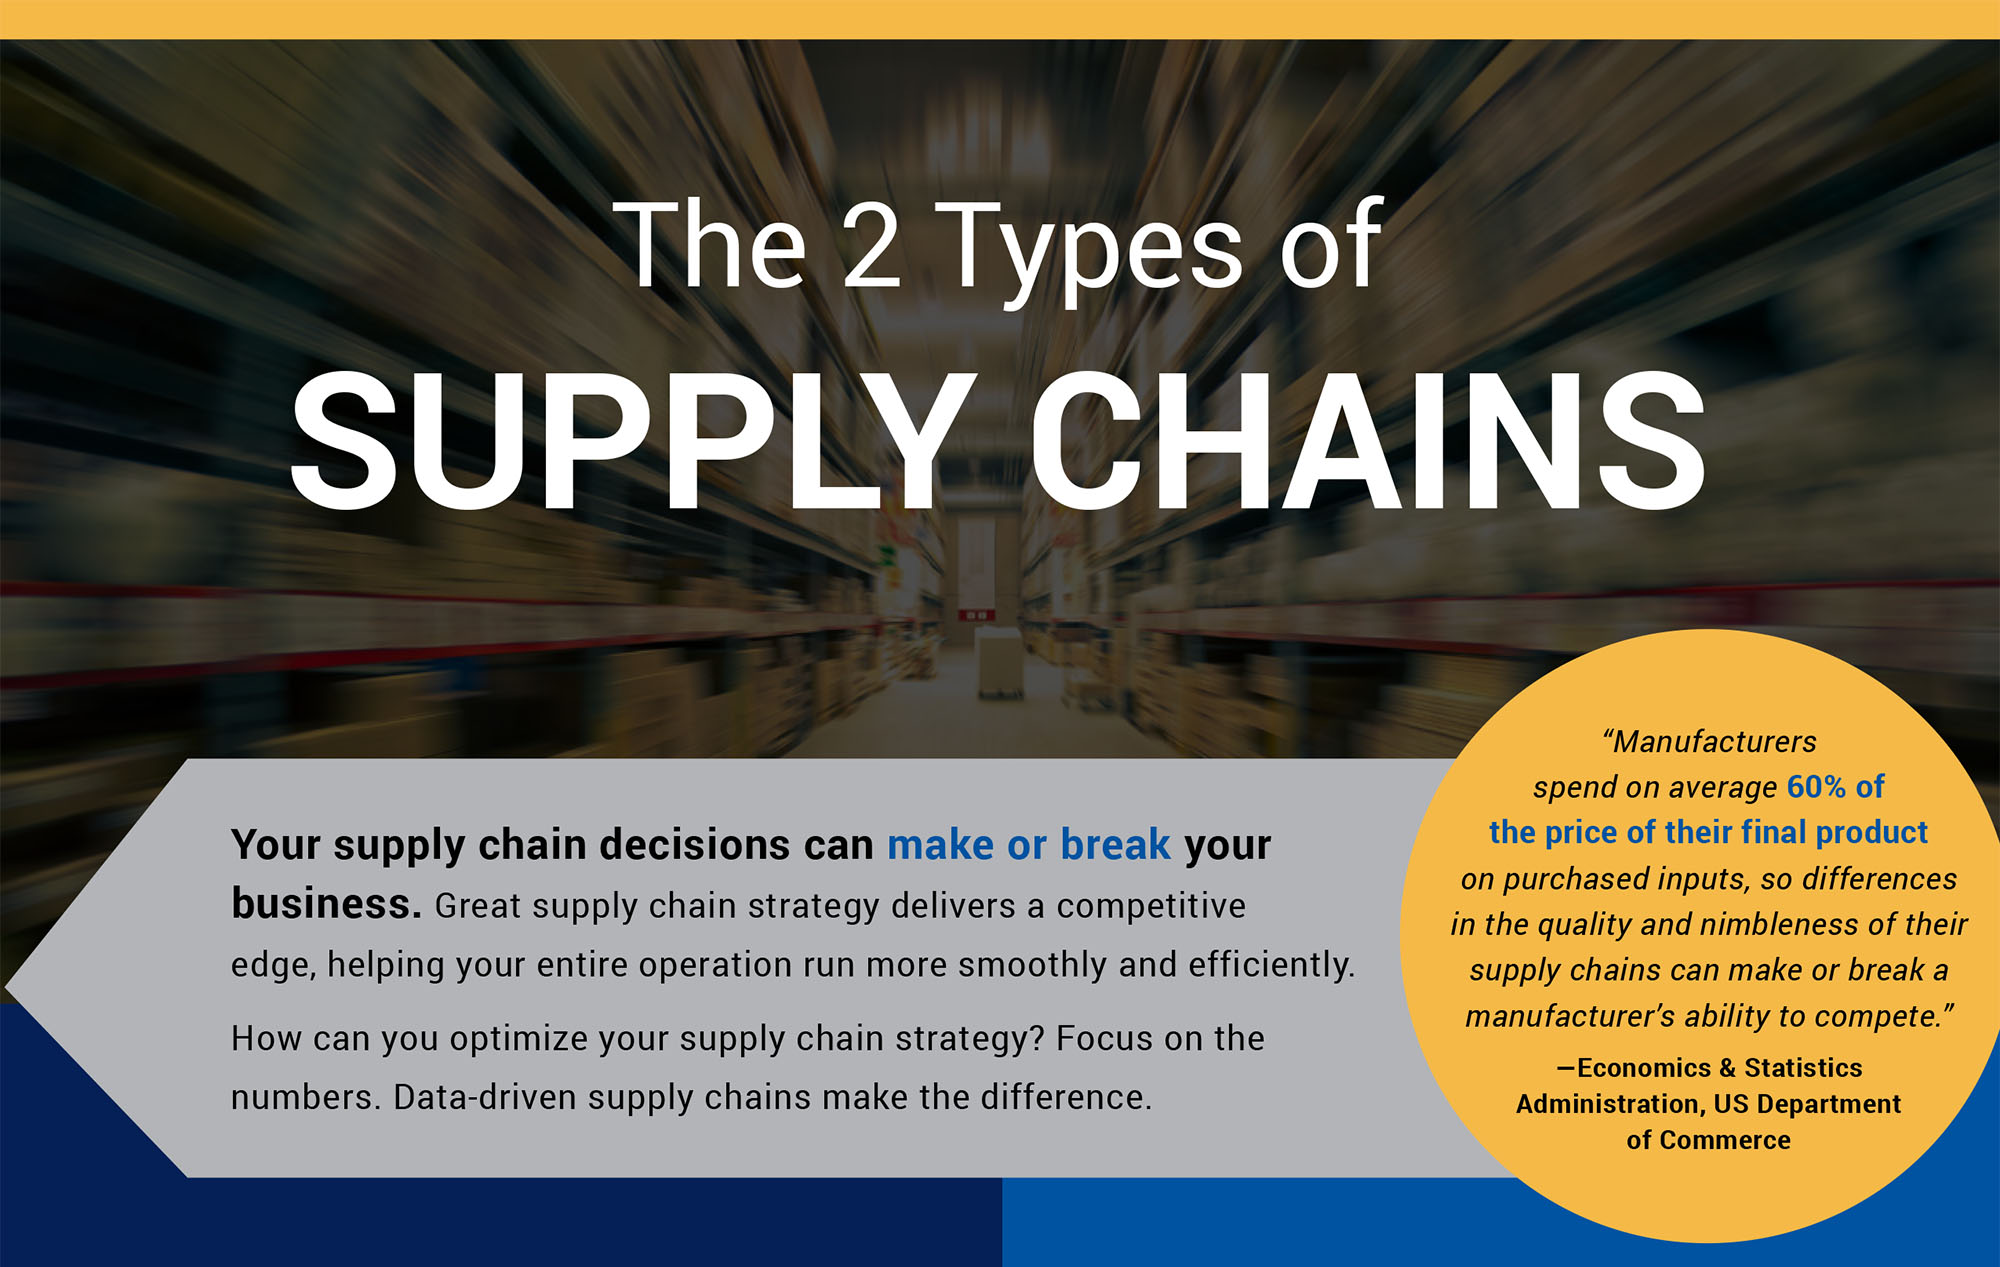 The 2 Types of Supply Chains